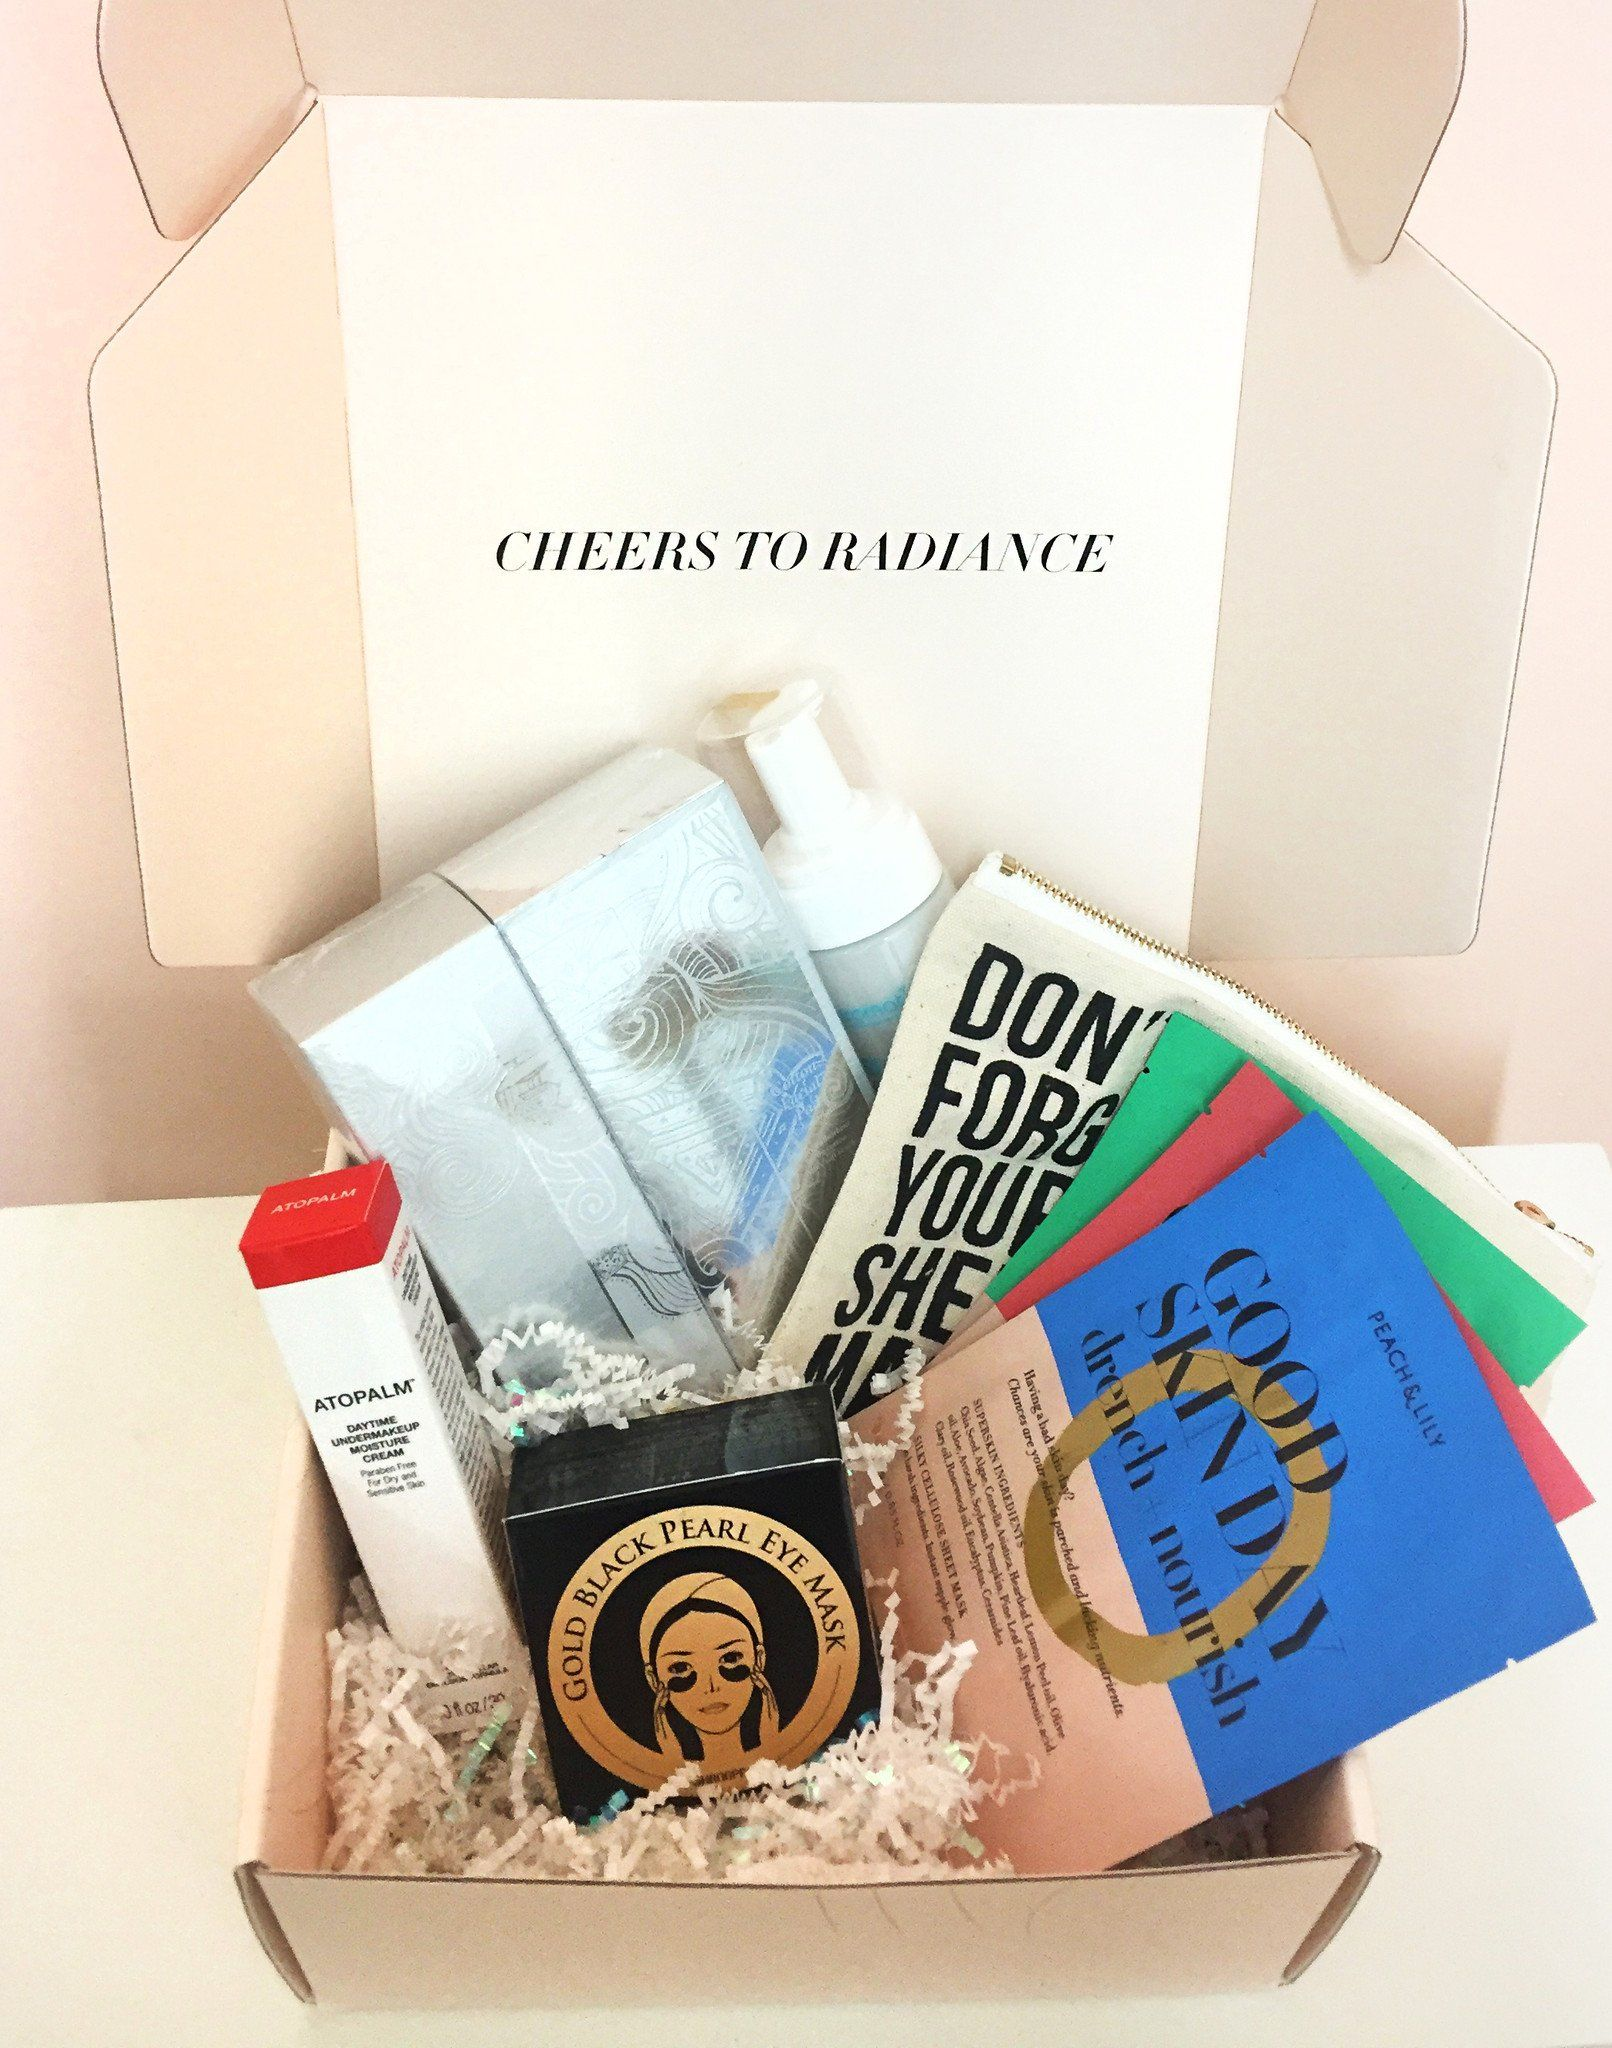 The Radiance Holiday Gift Box